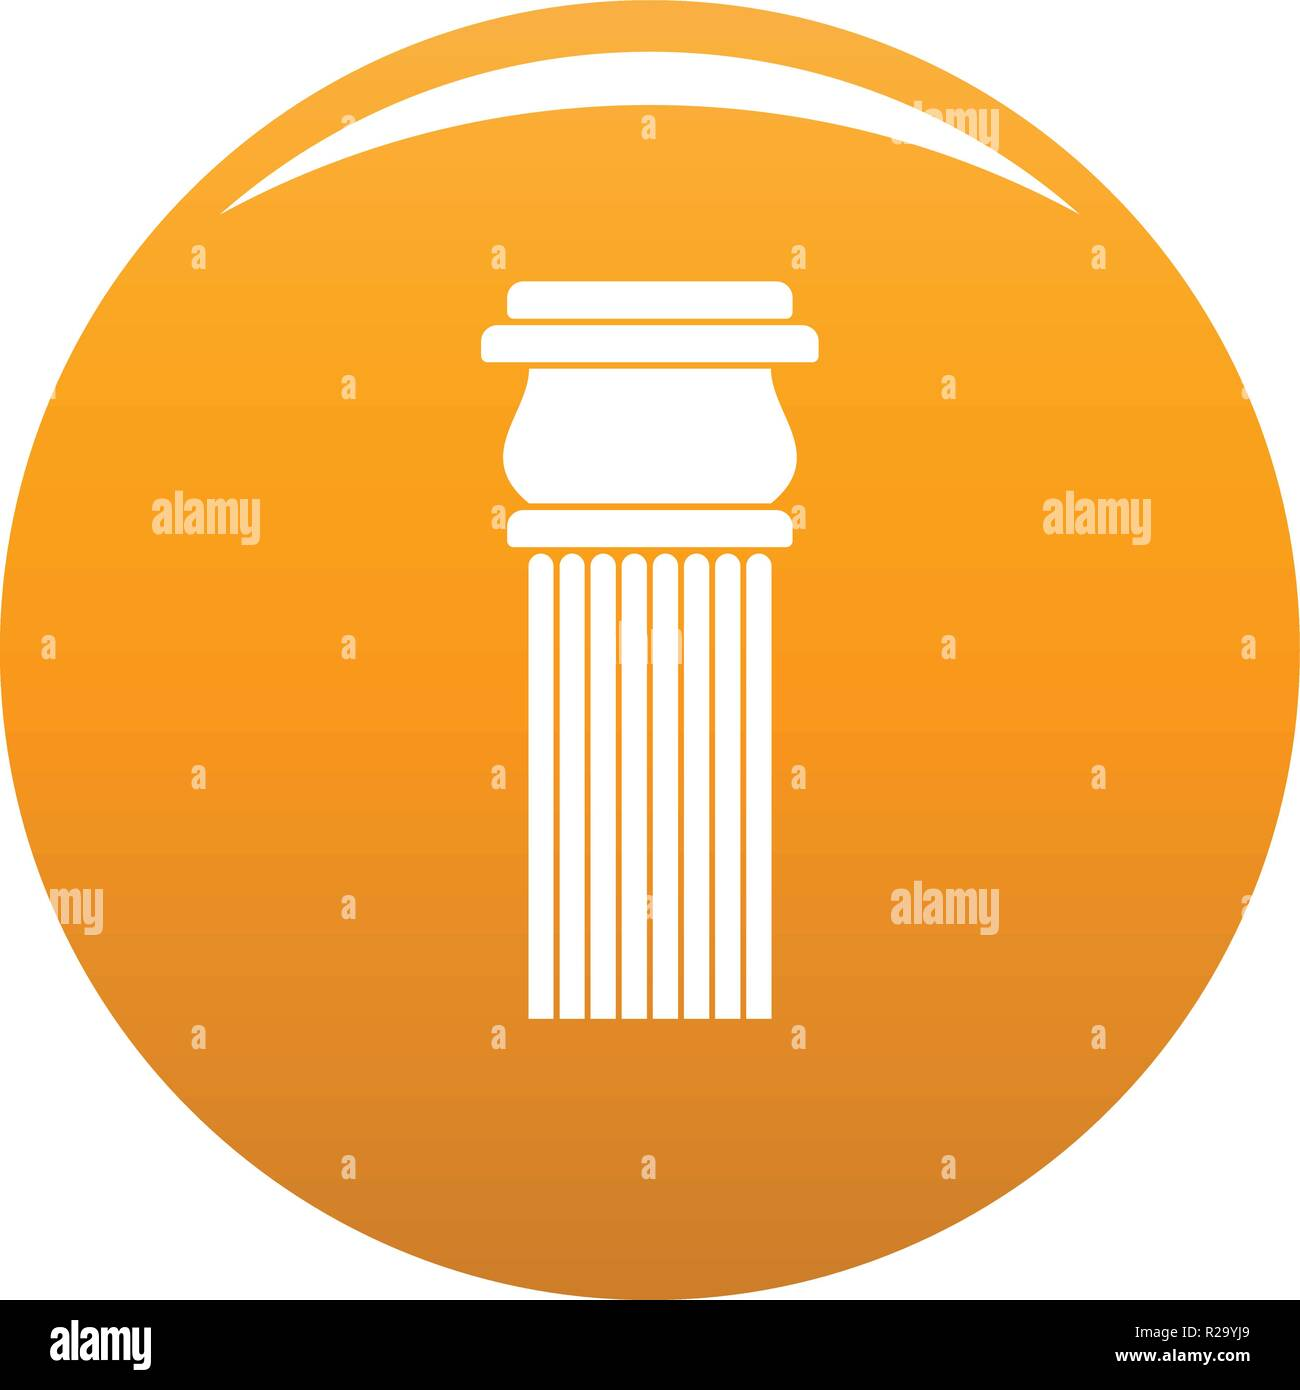 Stone column icon. Simple illustration of stone columnbaseball cap vector icon for any design orange - Stock Image